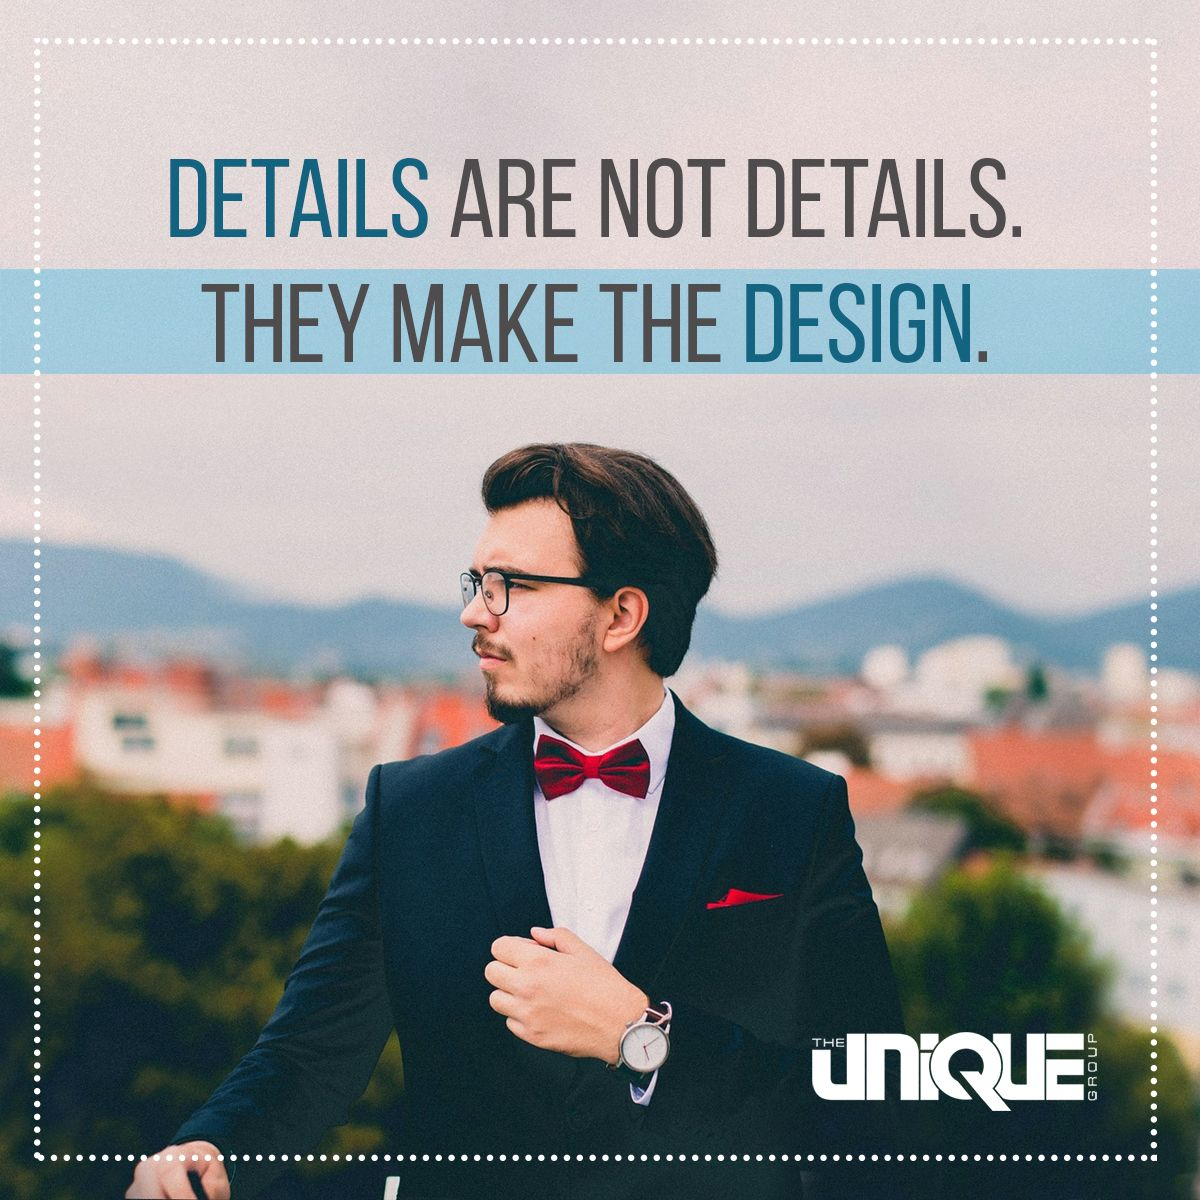 #details are not details. They make the #design - #fashion #apparel #clothing #elegant #unique #branding #brand #labelling #labels #inspiration #inspirationalquotes #UK #nyc #Toronto #la #suit #red #ribbon #losangeles